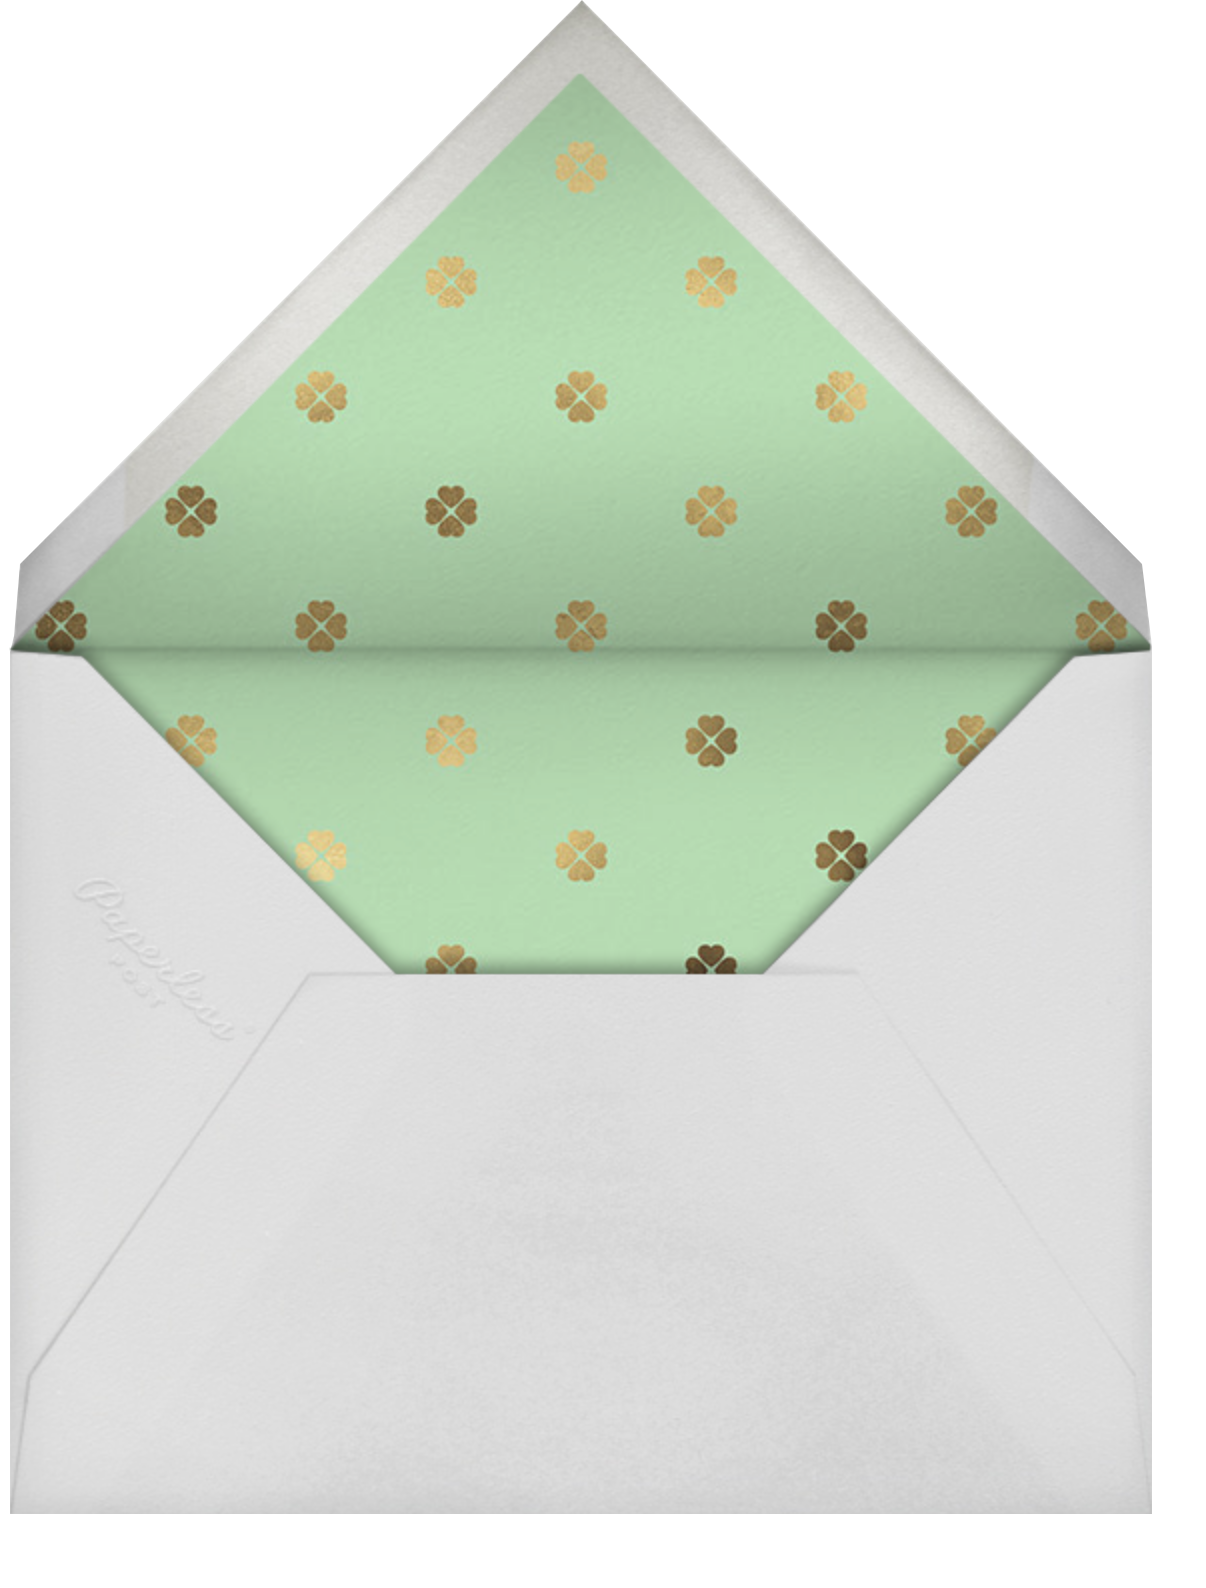 Colorblocked Stripes - Green/Blue - kate spade new york - Save the date - envelope back